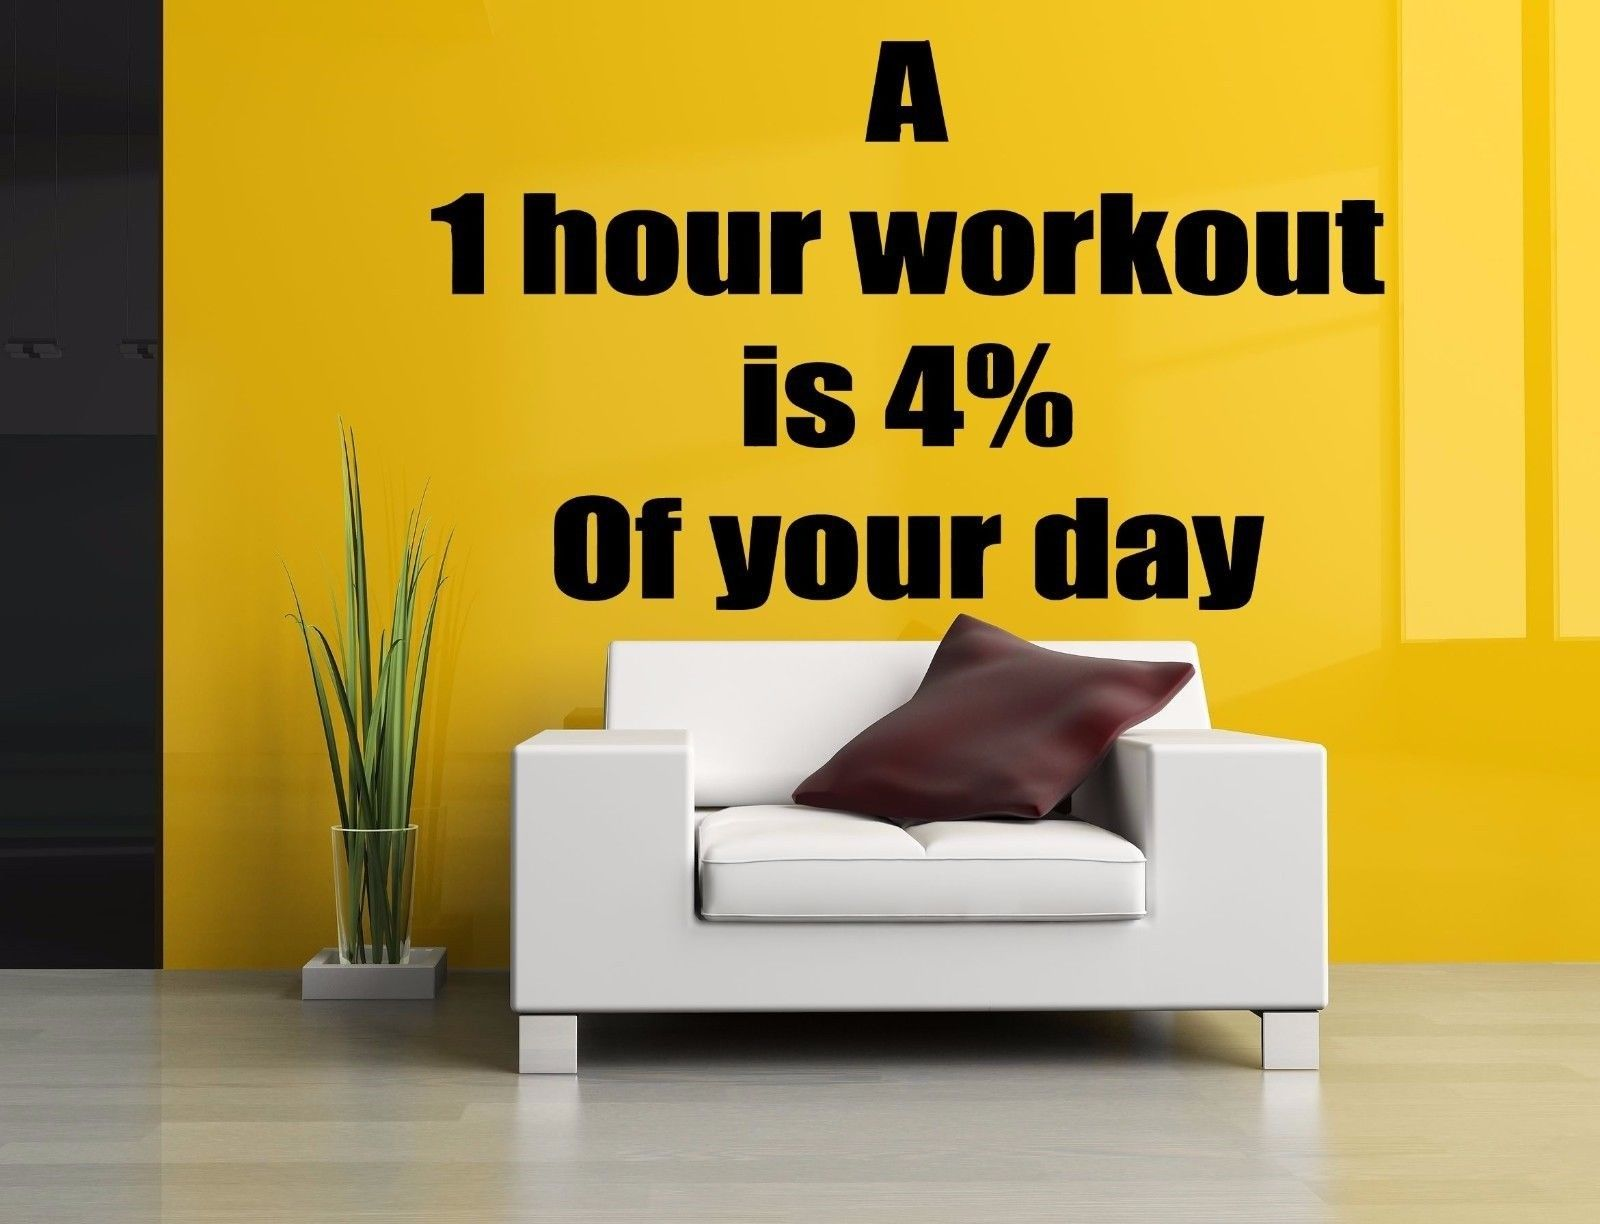 Wall Room Decor Art Vinyl Sticker Mural Decal Gym Work Motivational ...